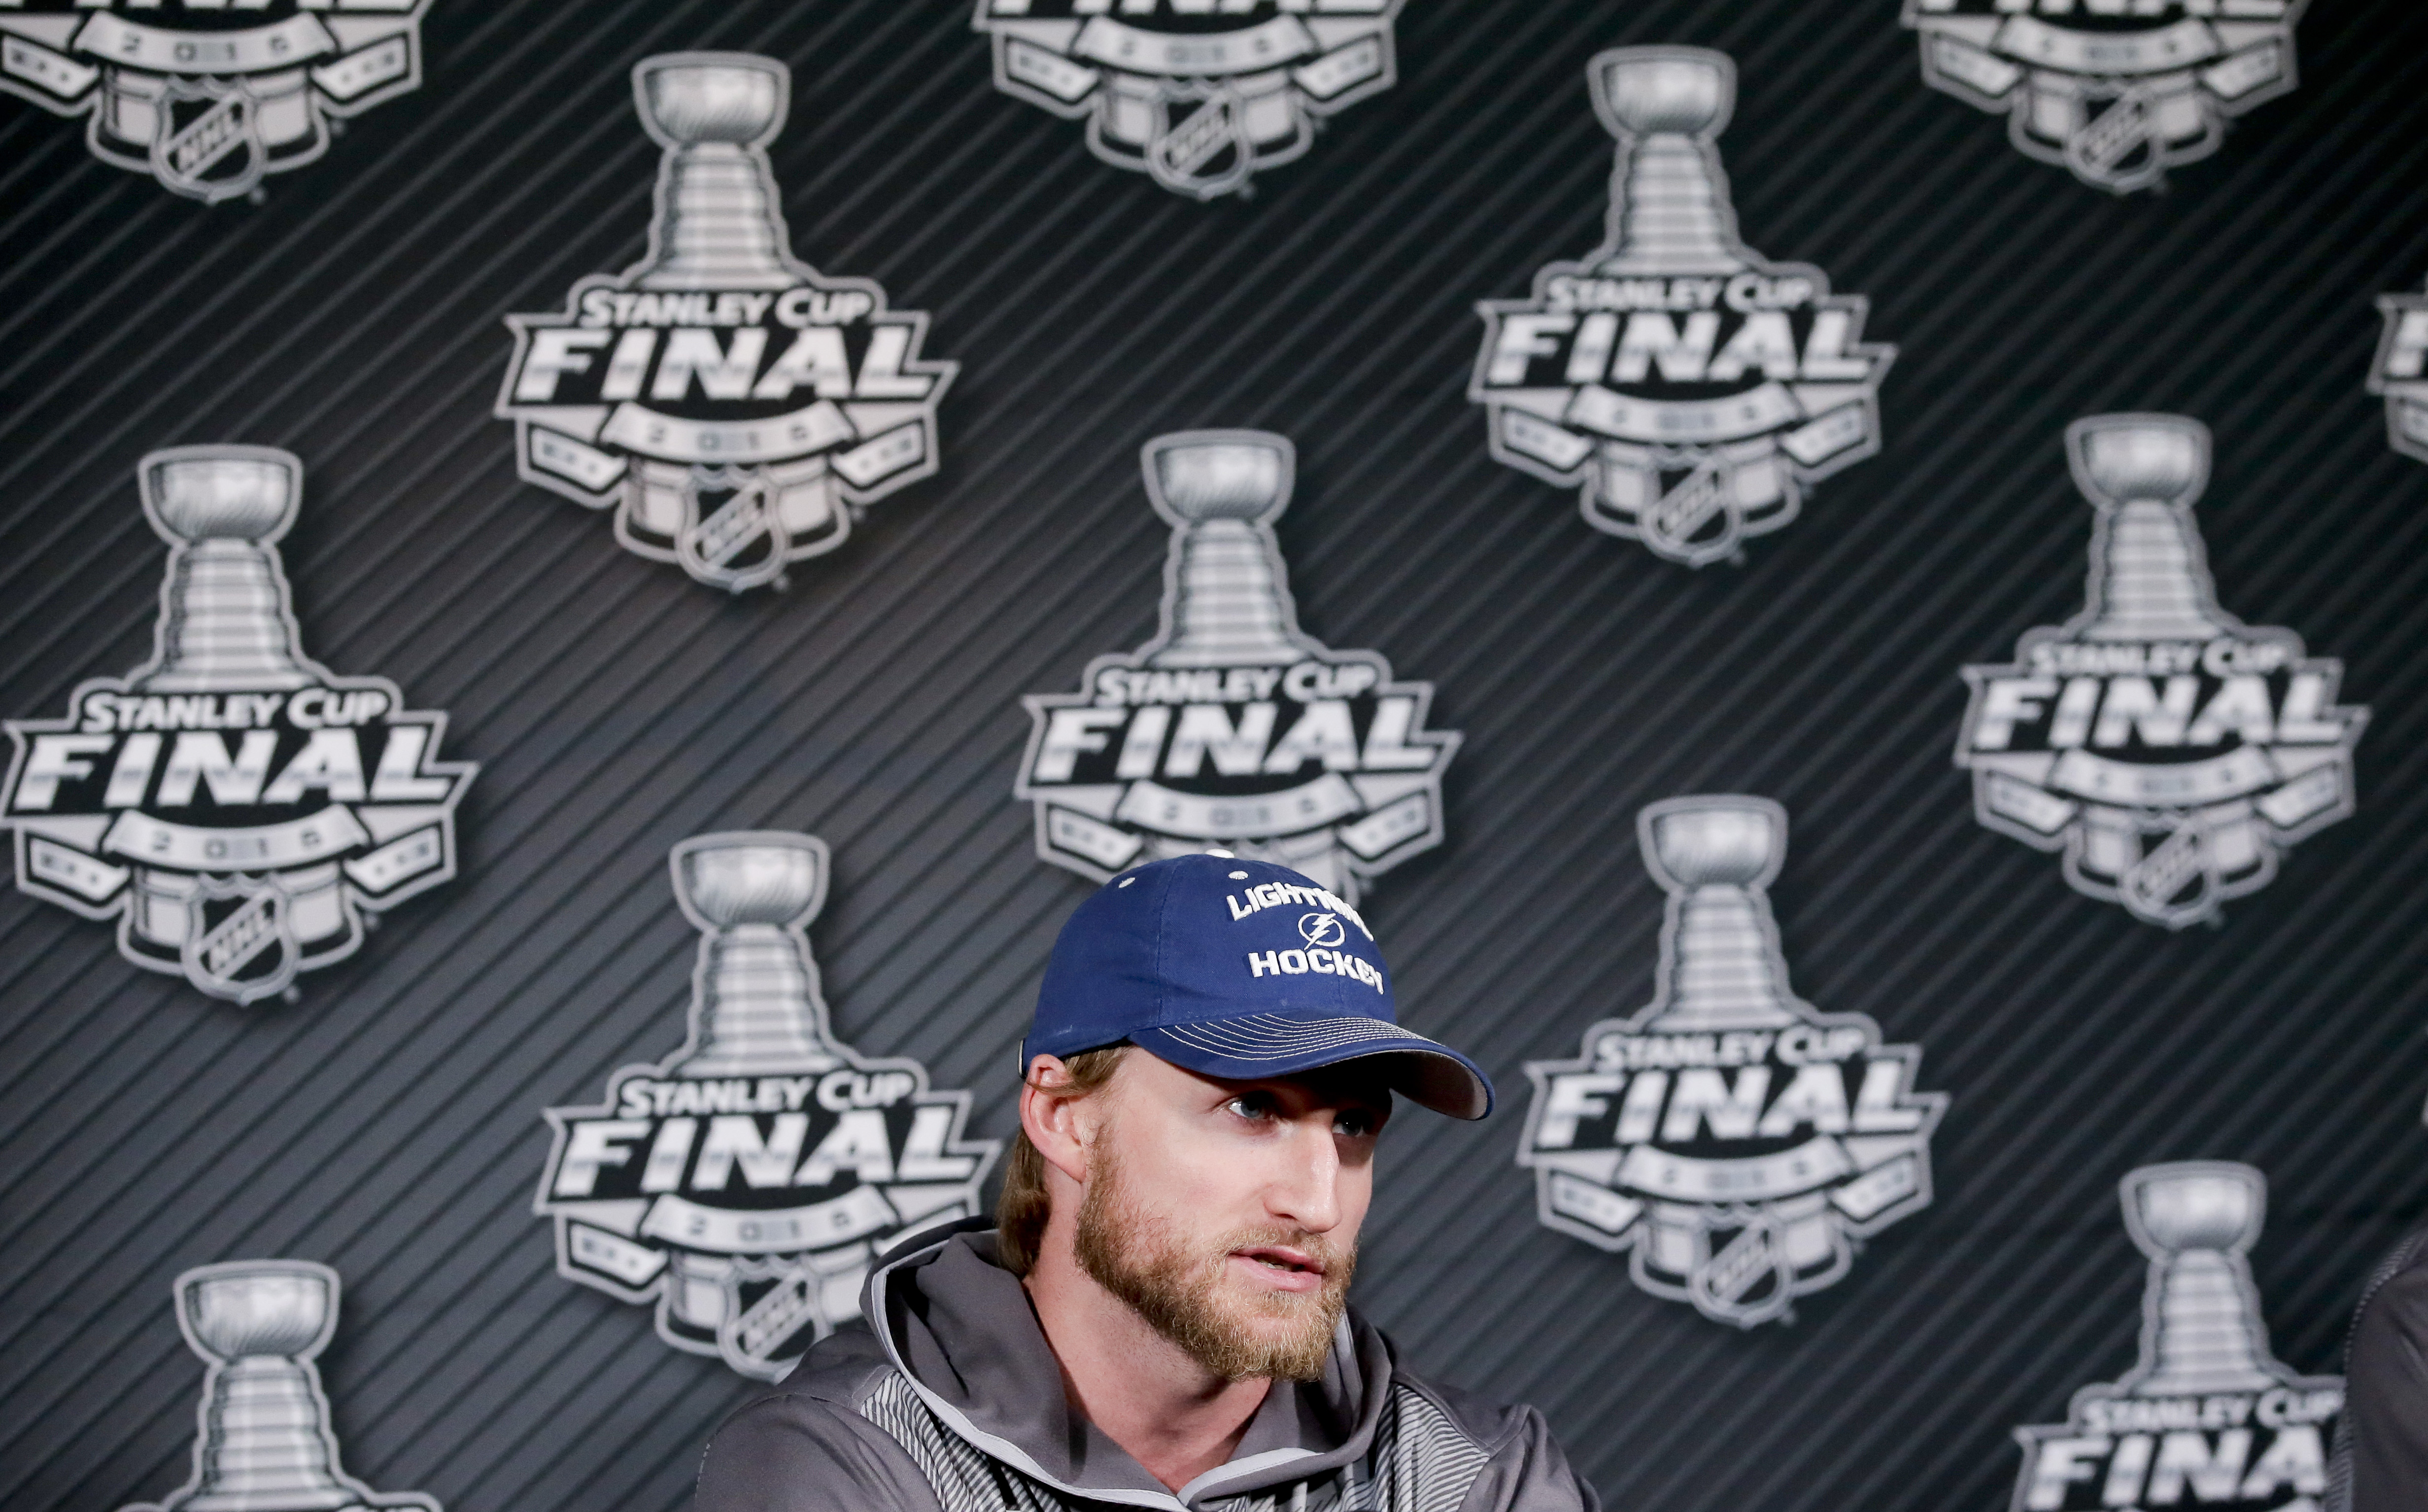 Tampa Bay Lightning center Steven Stamkos speaks during a news conference at the NHL hockey Stanley Cup Final in Tampa, Fla., Thursday, June 4, 2015. The Chicago Blackhawks defeated the Lightning 2-1 in Game 1 Wednesday night. Game 2 is scheduled for Satu